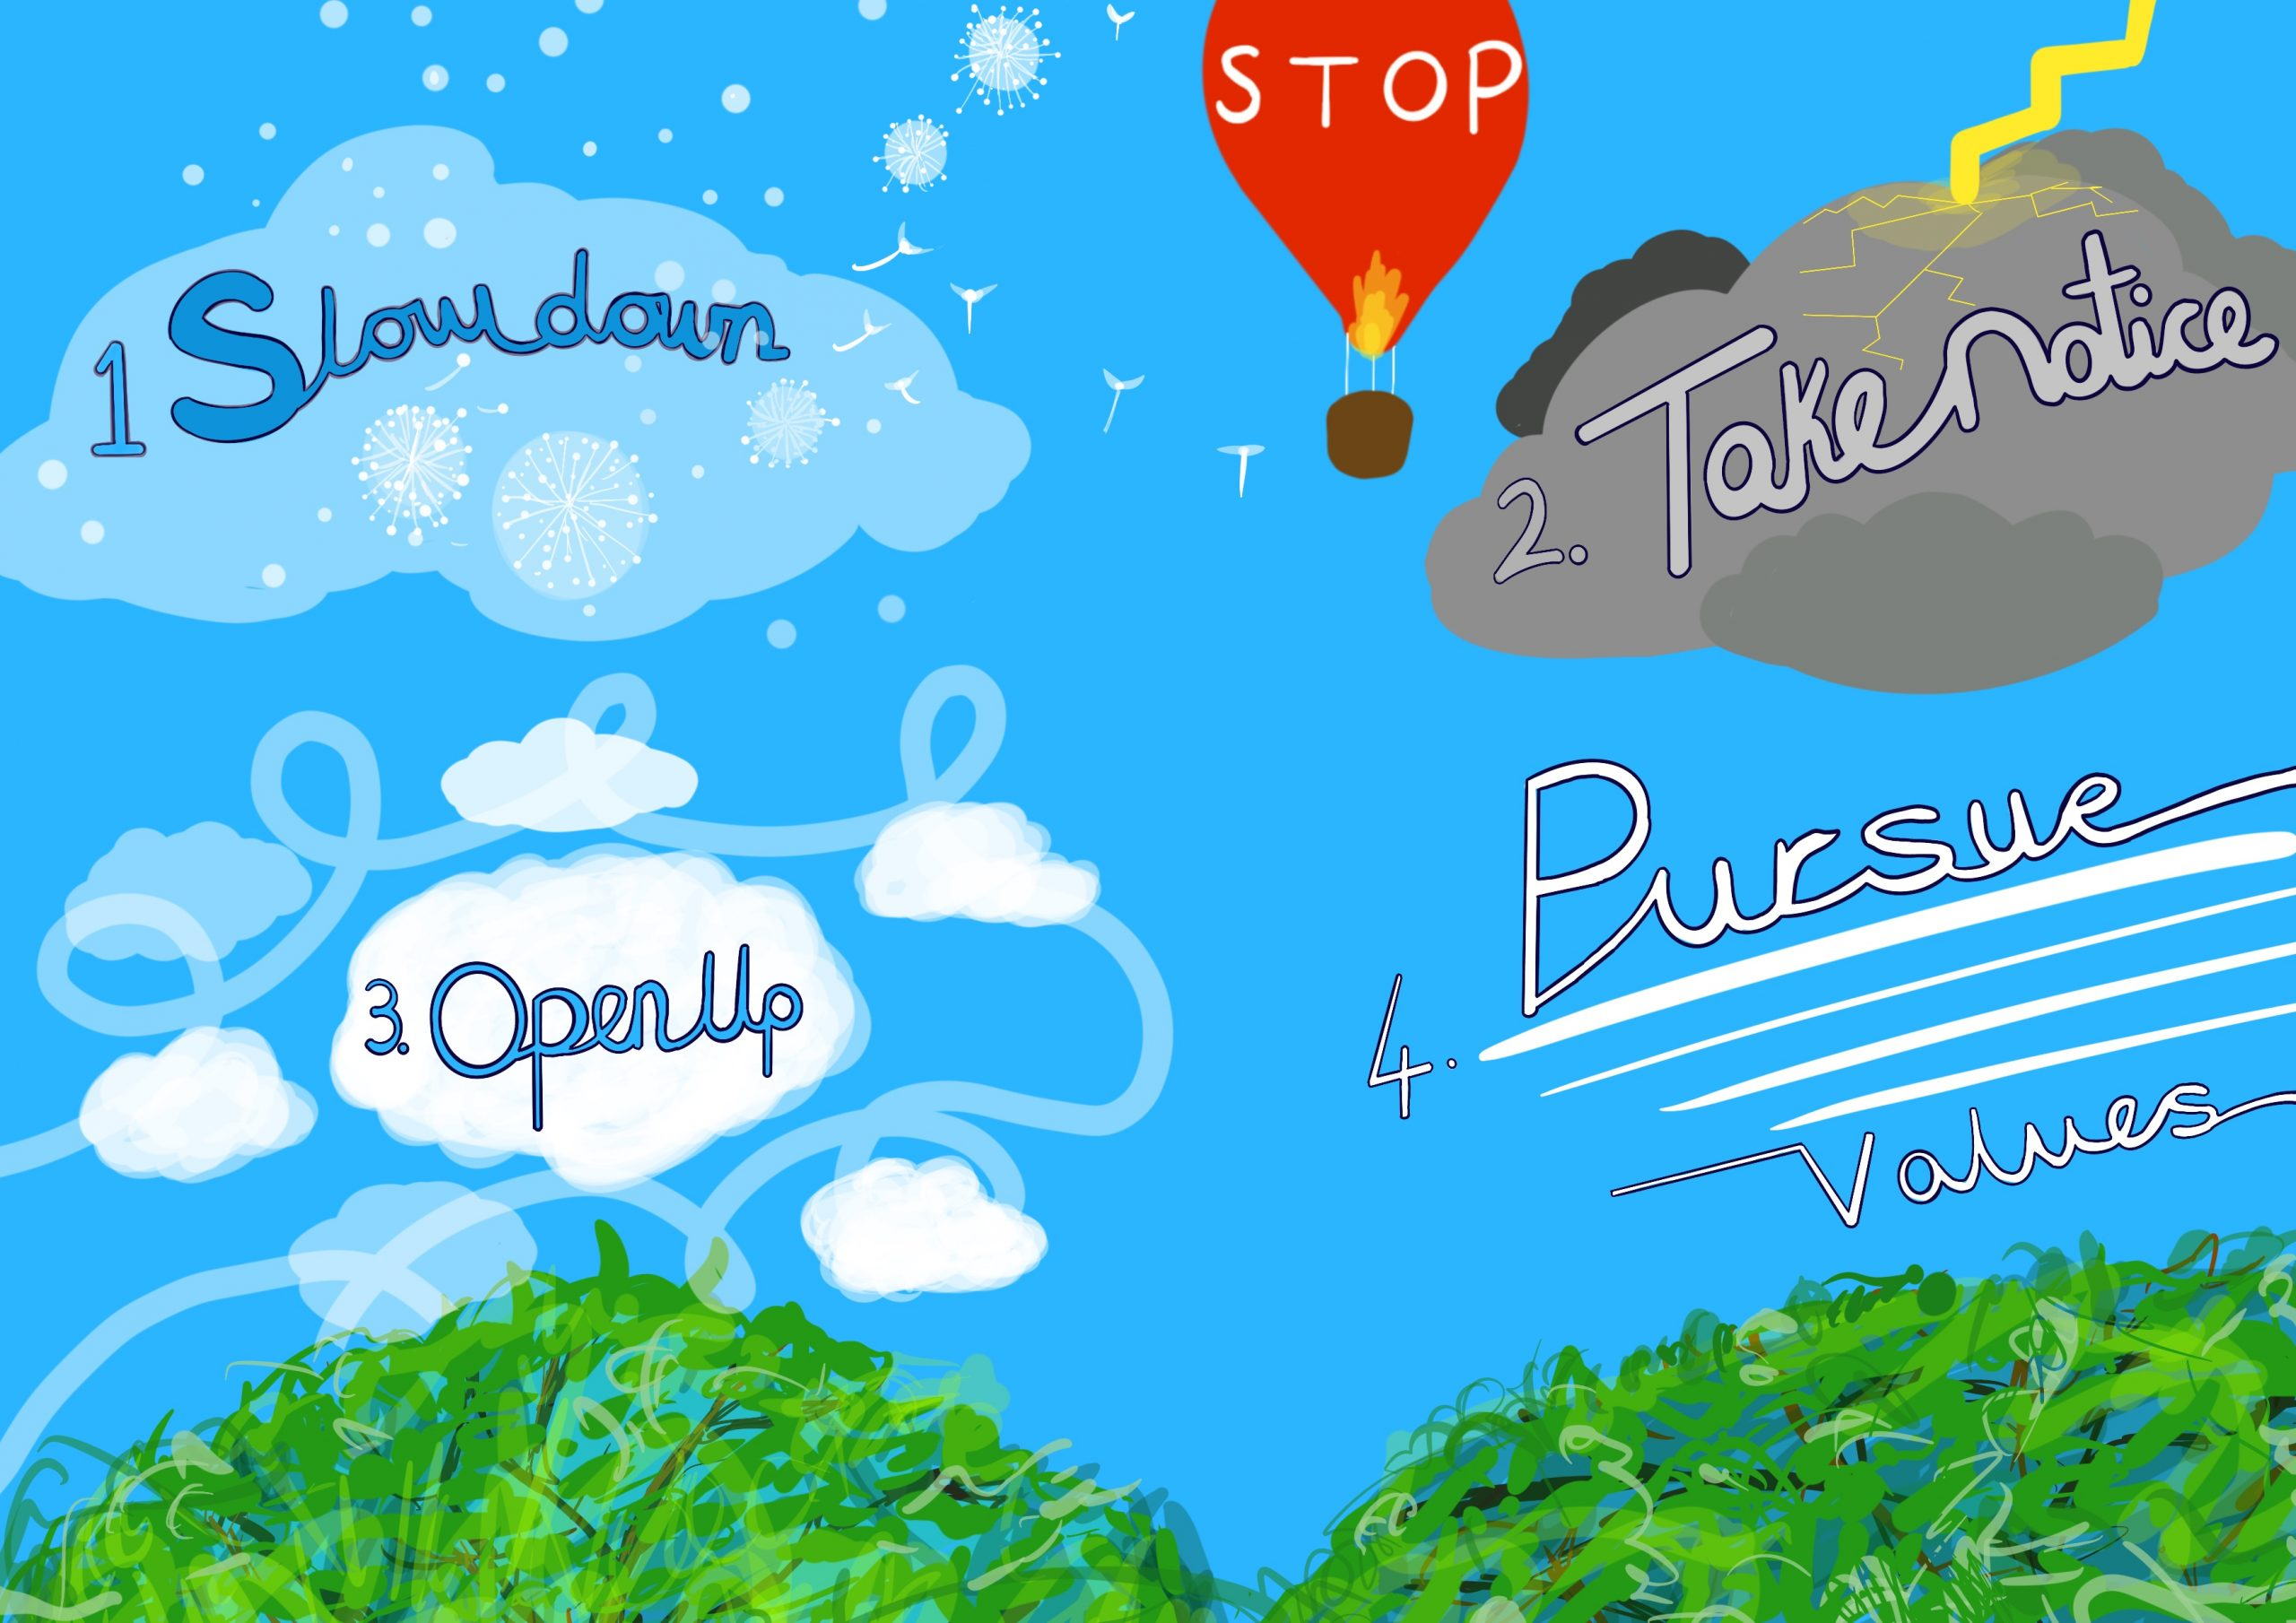 Image shows a digital drawing created Touretteshero. It is a diagram illustrating the Acronym 'STOP' she has used as a tool to manage situations she finds distressing and stressful. It is a scene of a blue sky, with a tree in the foreground. In the distance, in the top centre of the image is a red hot air balloon with 'STOP' in white letters written on the balloon. In the top left of the image are the words. '1. Slow Down' This is surrounded by dandelion seeds dispersing and being blown away in the breeze. In the top right of the image are the words '2. Take Notice' in grey letters backed onto a grey stormy cloud with a lightning bolt coming out of the cloud. In the bottom left of the image are a group of fluffy white clouds with the words '3. Open Up' in the centre. In the bottom right corner of the image are four white lines of cloud underlining the words '4. Pursue Values.'